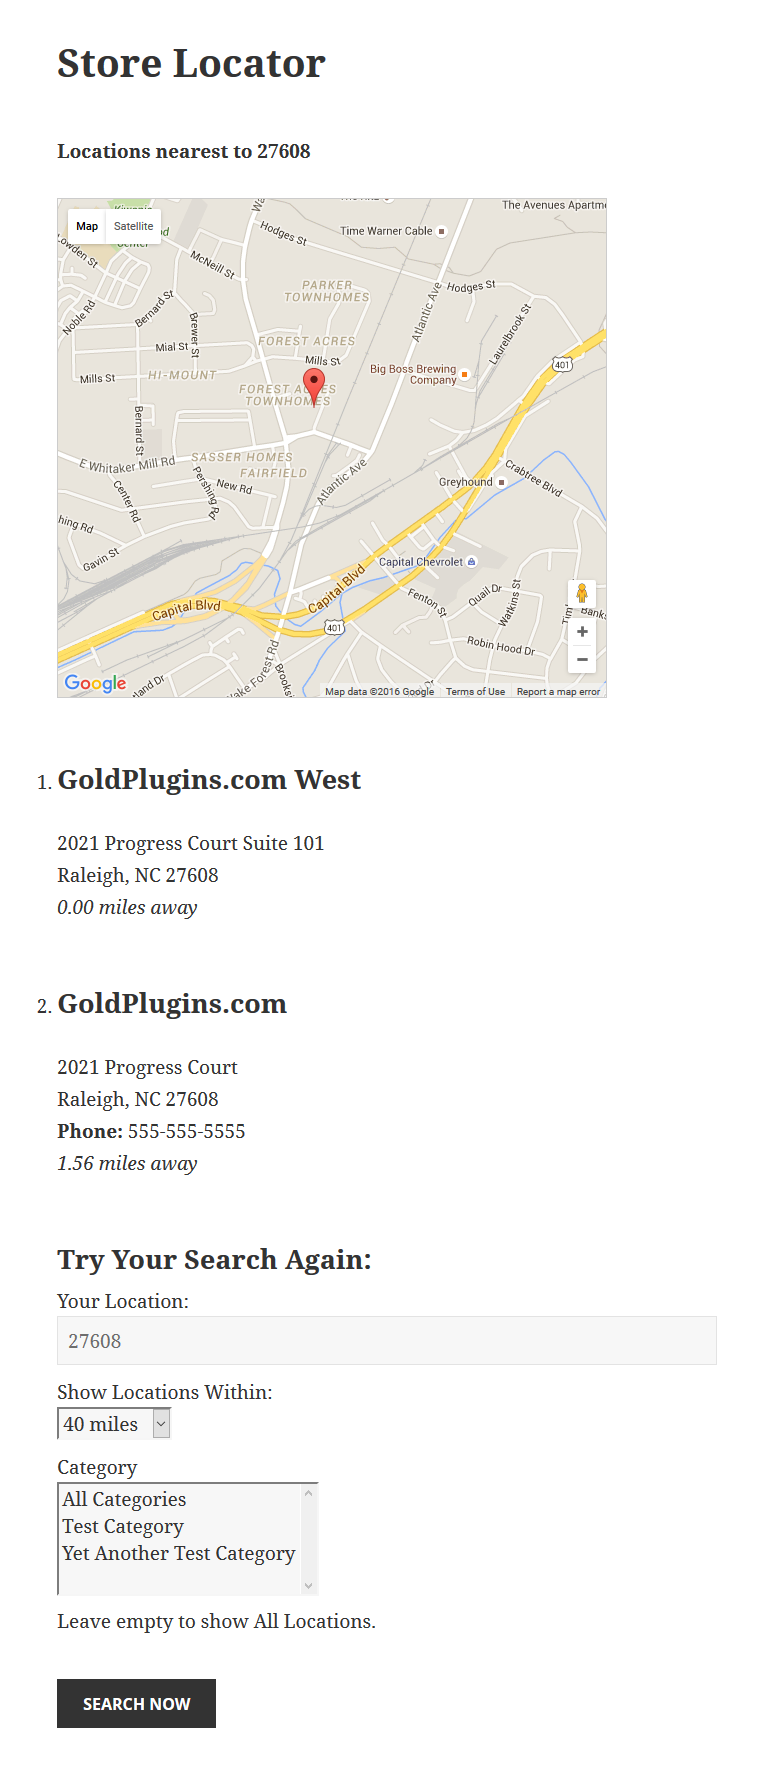 This is a demo of the Store Locator with search results.